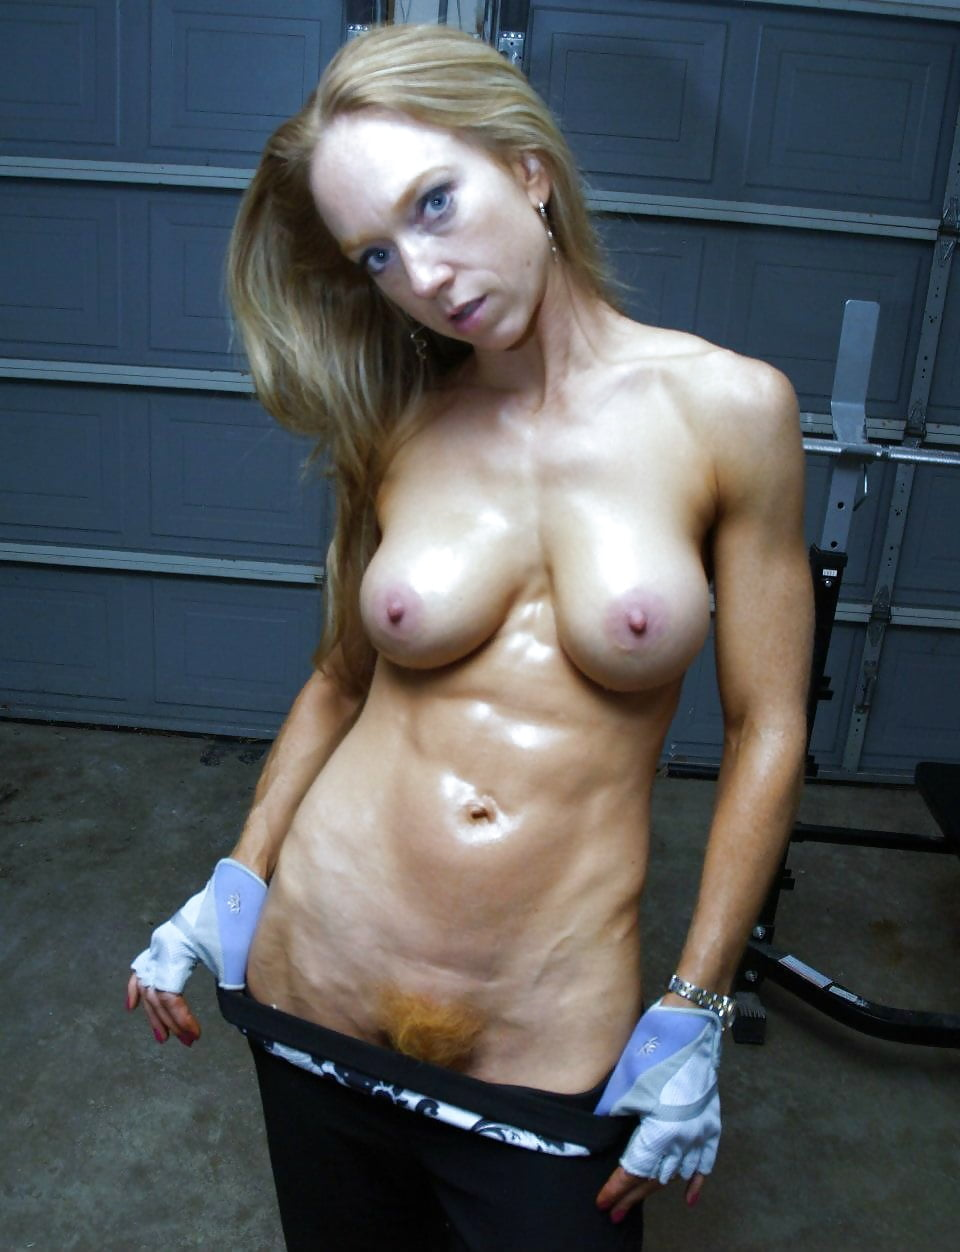 music-amateur-abs-tits-naked-bib